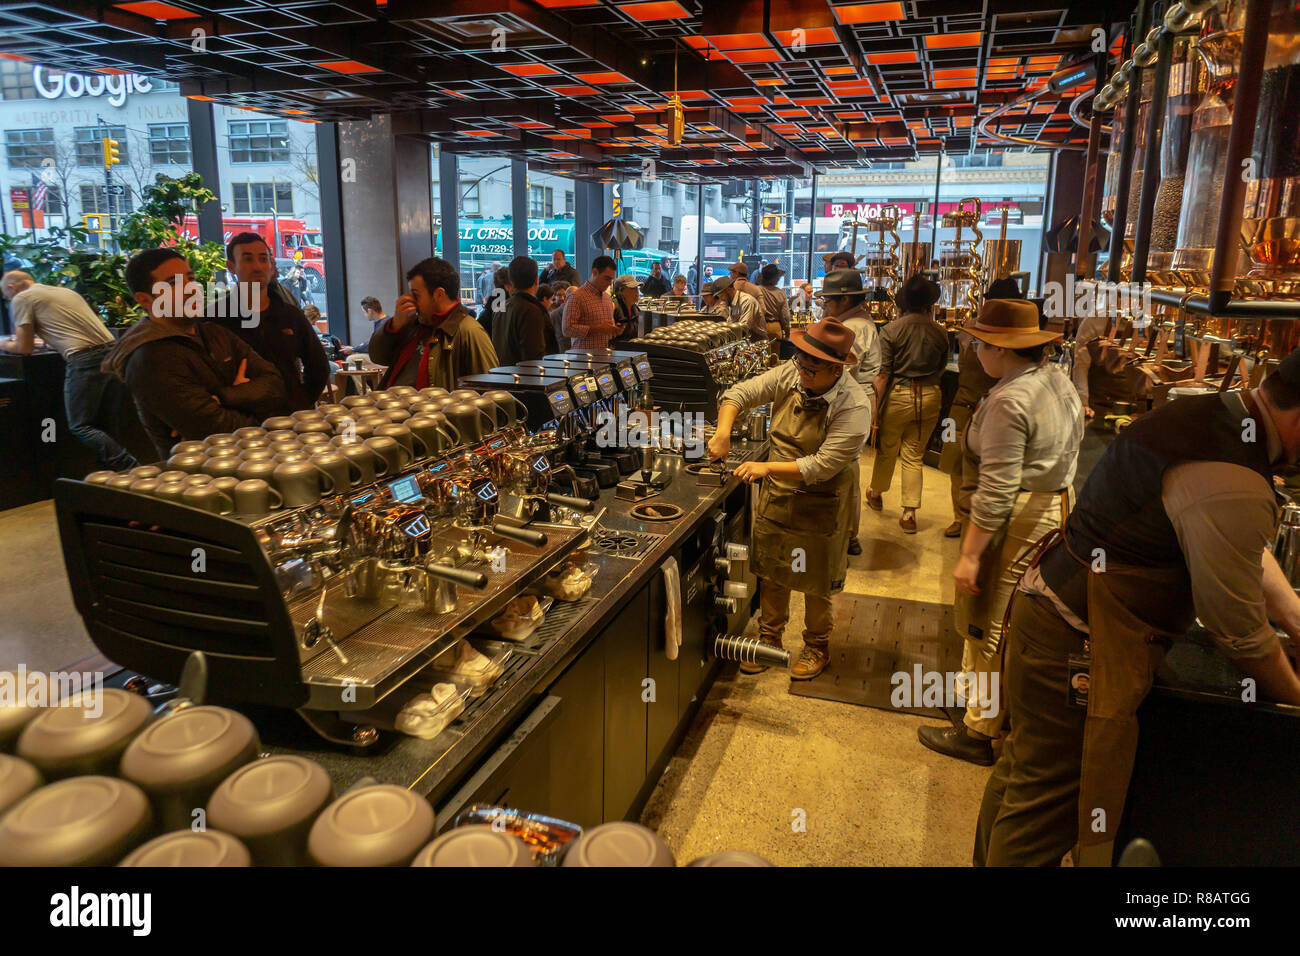 New York, USA  14th December, 2018  Coffee lovers flock to